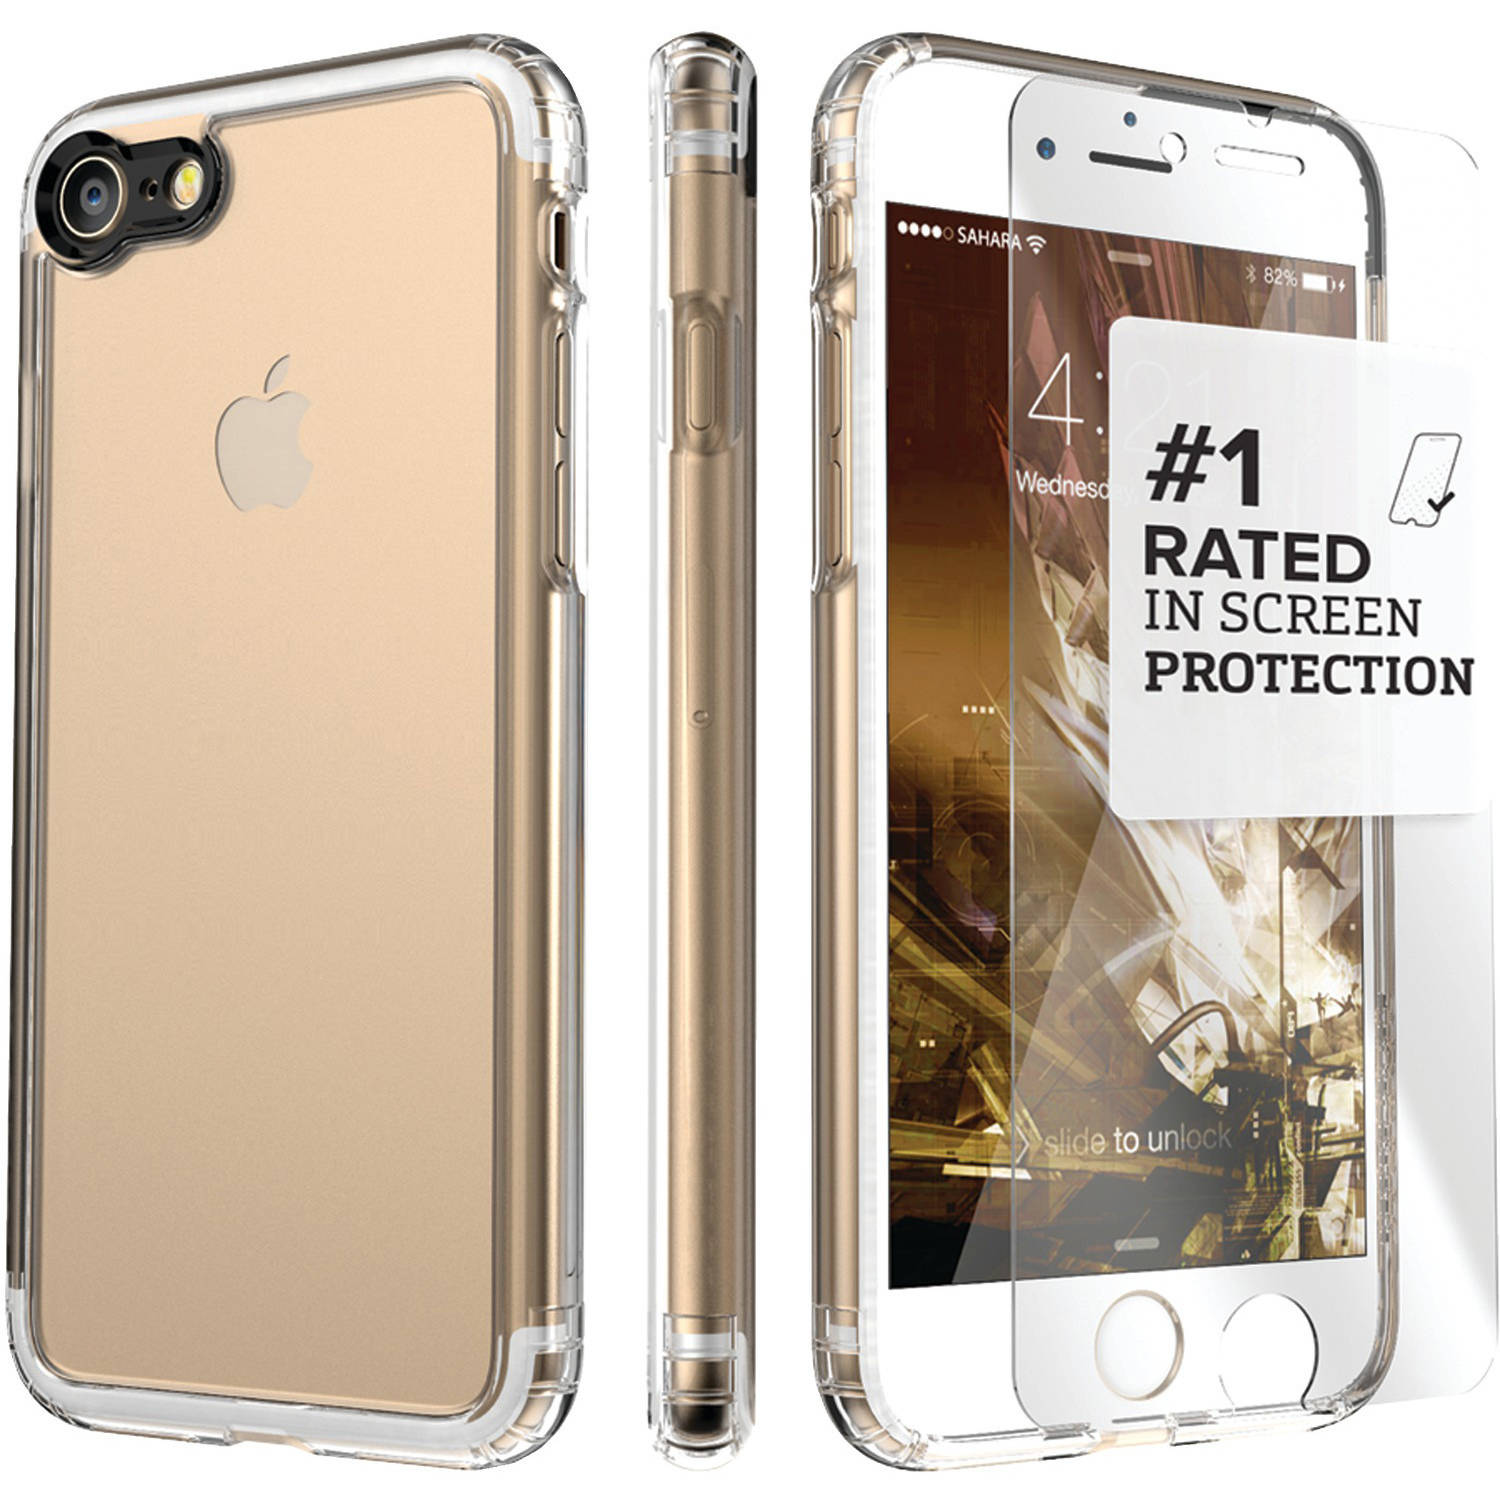 Saharacase Apple iPhone 7 Plus Clear Protective Kit